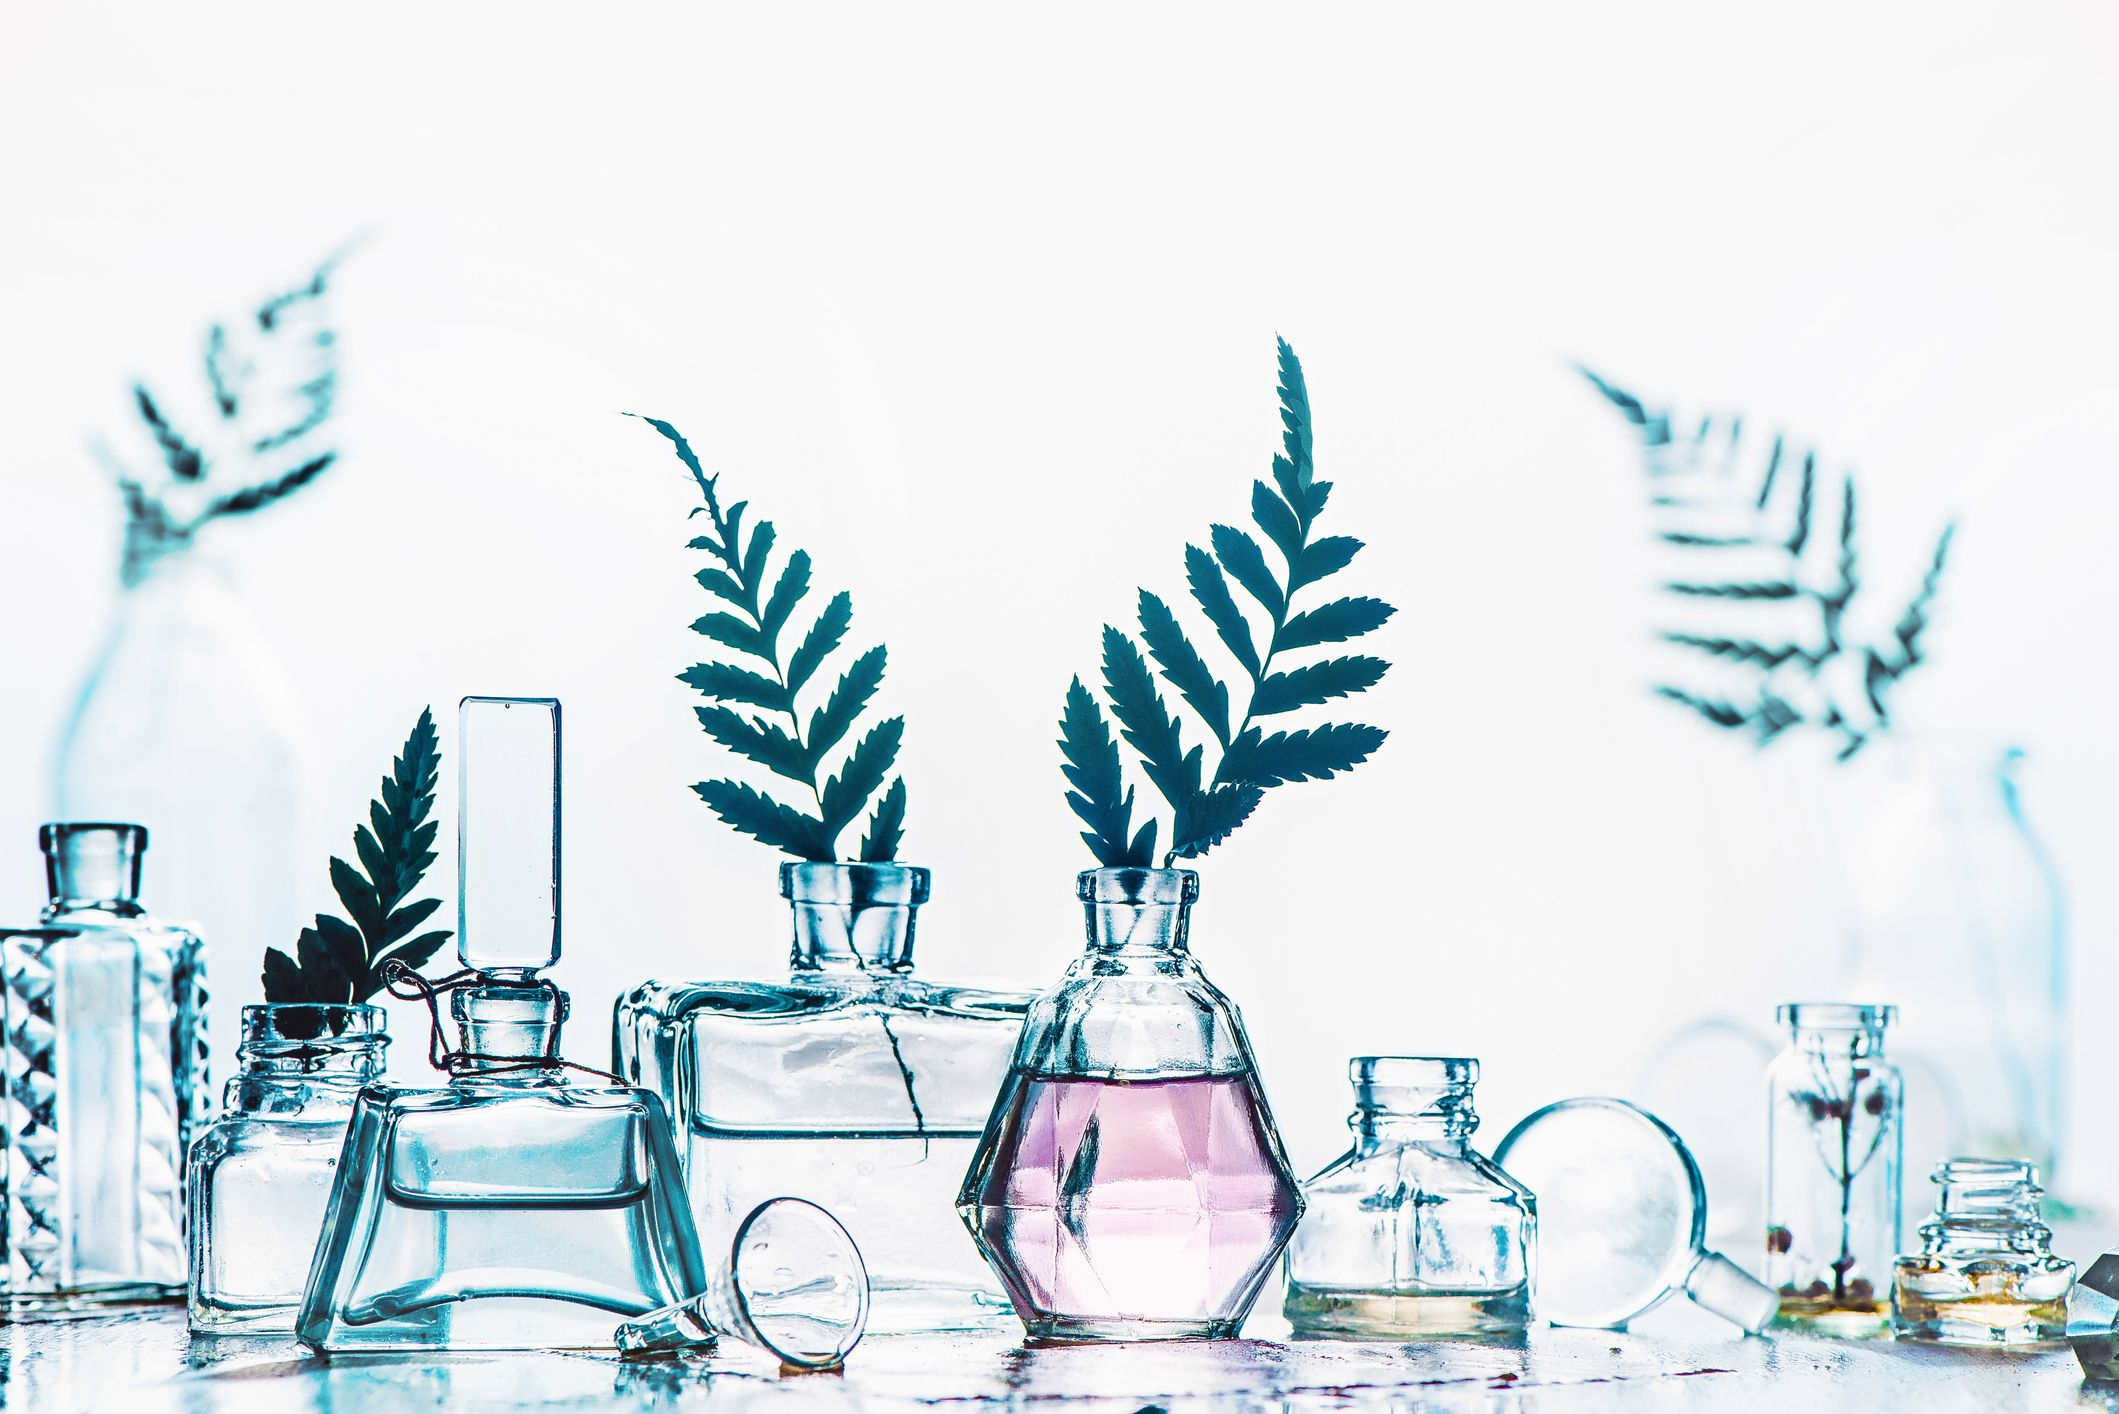 My Search for a Totally Natural, Environmentally Friendly Fragrance